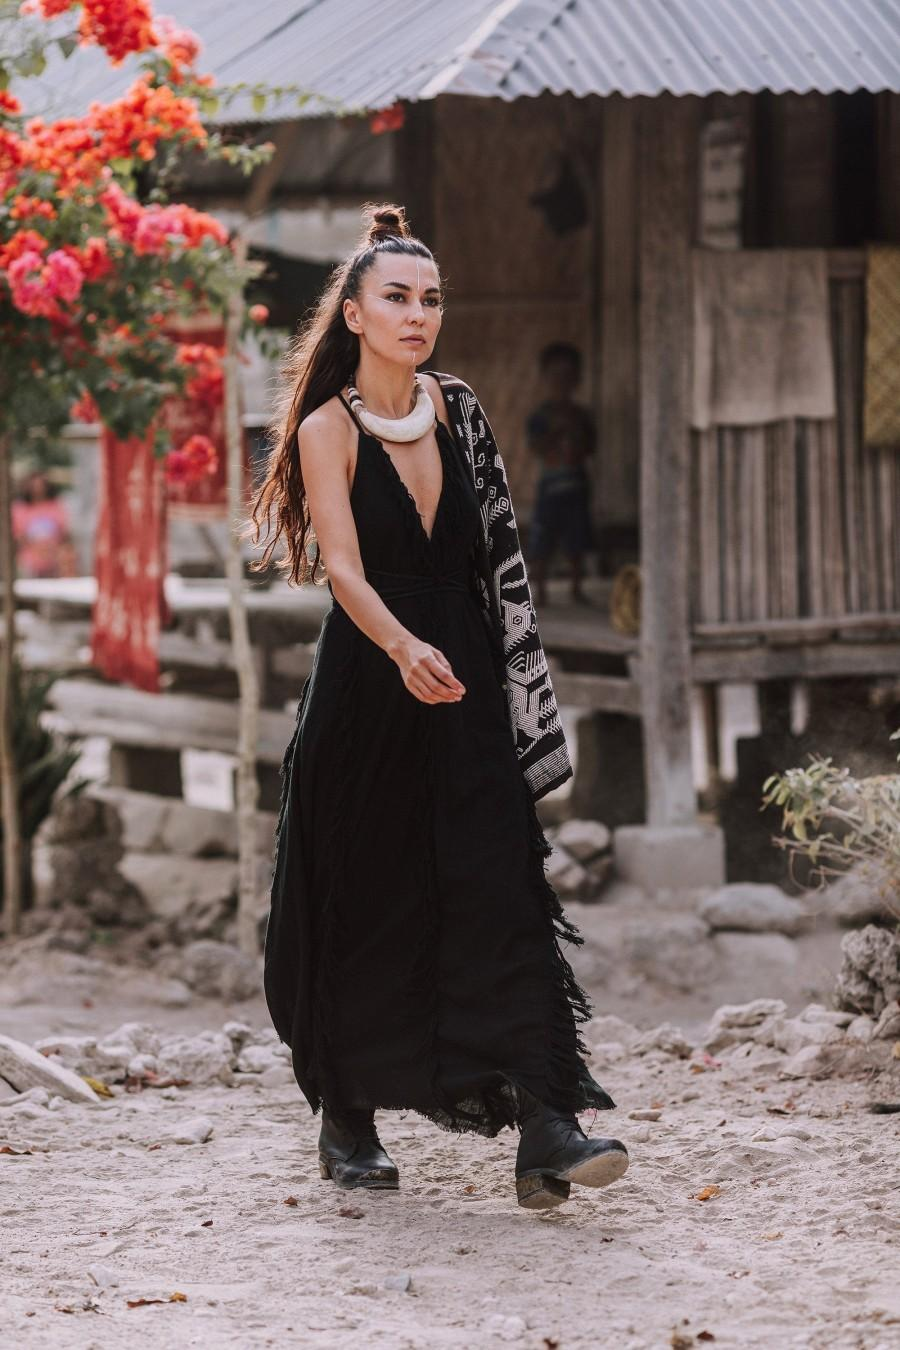 زفاف - Black Cotton Boho Bohemian Dress • Black Simple Wedding Maxi Goddess Dress • Sexy Witch Open Back Dress • Evening Cocktail Bridesmaid Dress